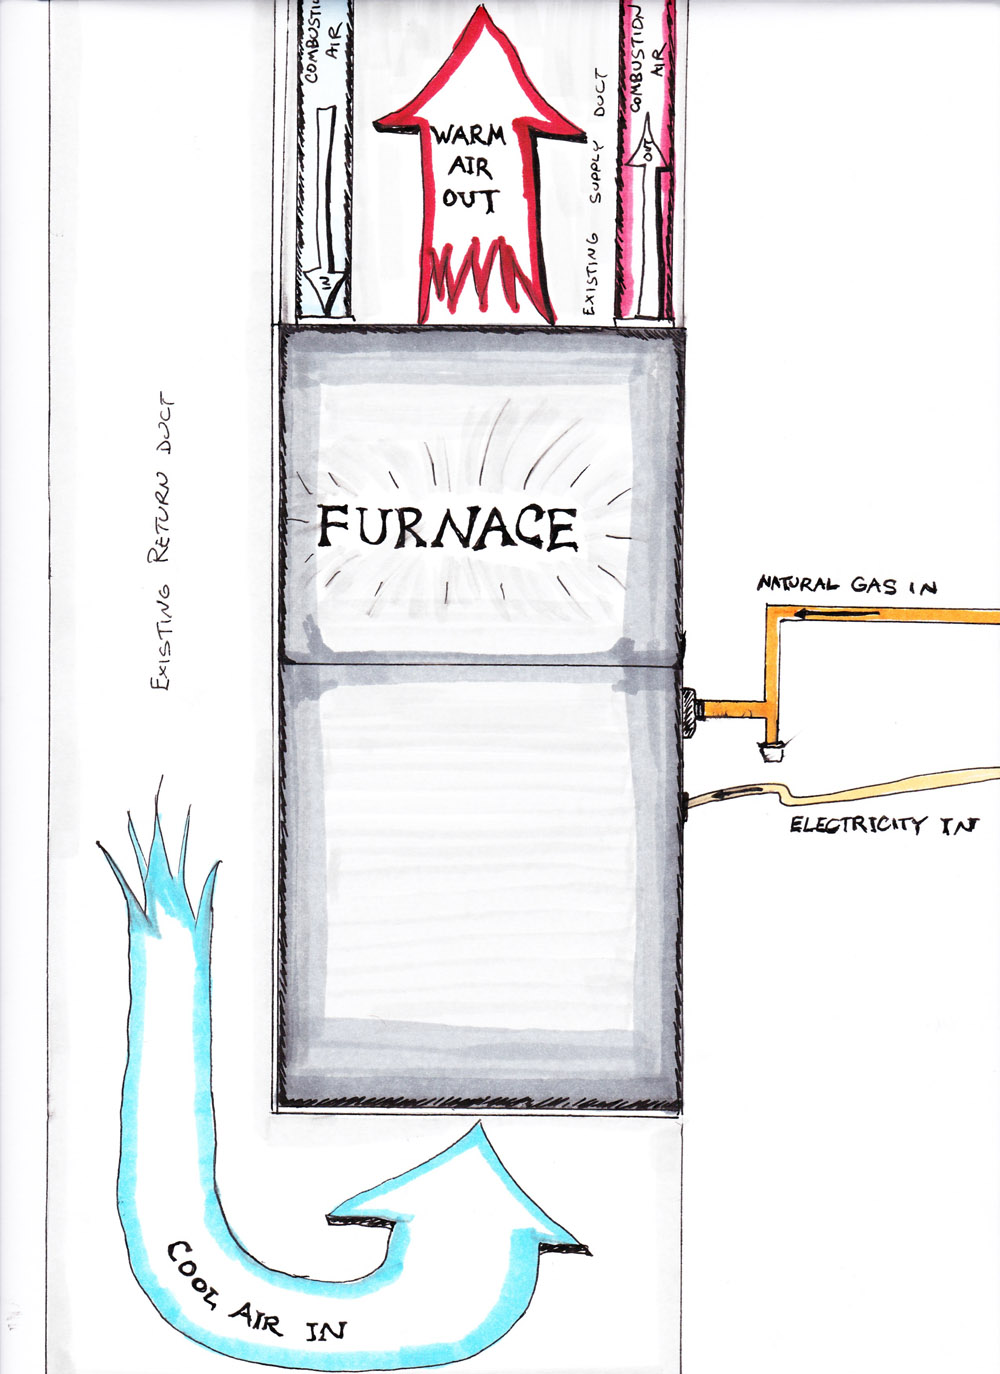 How to Replace Your Own Furnace | Mr. Money Mustache Old Gas Furnace Wiring Diagram Youtube on old gas wall heater, old whirlpool furnace, carrier gas furnace diagram, bryant furnace parts diagram, old ge furnace only, old magic chef furnace parts, old gas furnace valves, old home gas furnace, old gas heater wiring schematic, old ge furnace parts, old rheem gas furnace, gas furnace parts diagram, whirlpool furnace diagram, gas furnace electrical diagram, coleman gas furnace diagram, old gas floor furnace schematic, old steam furnace wiring diagram, old payne gas furnace,